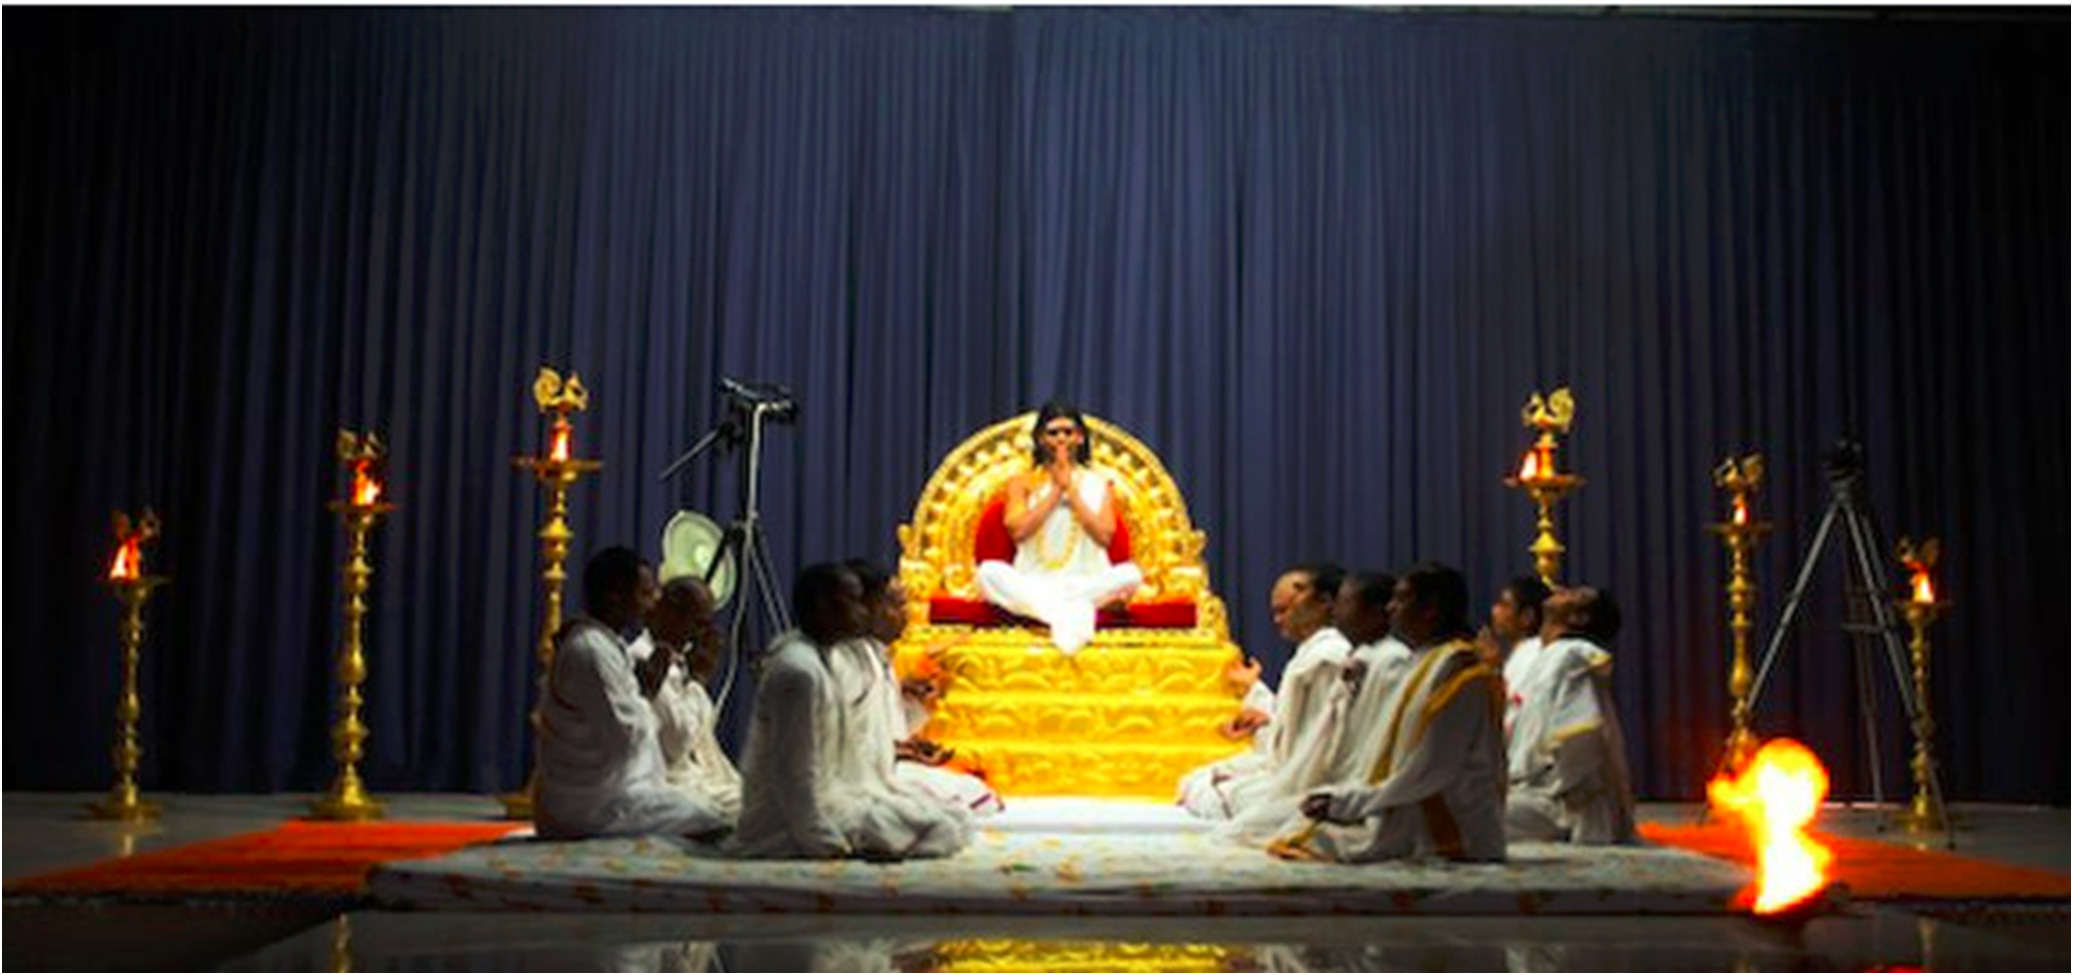 Swamiji performing a mystical initiation to a batch of sincere seekers yearning to experience the deeper truths of life.